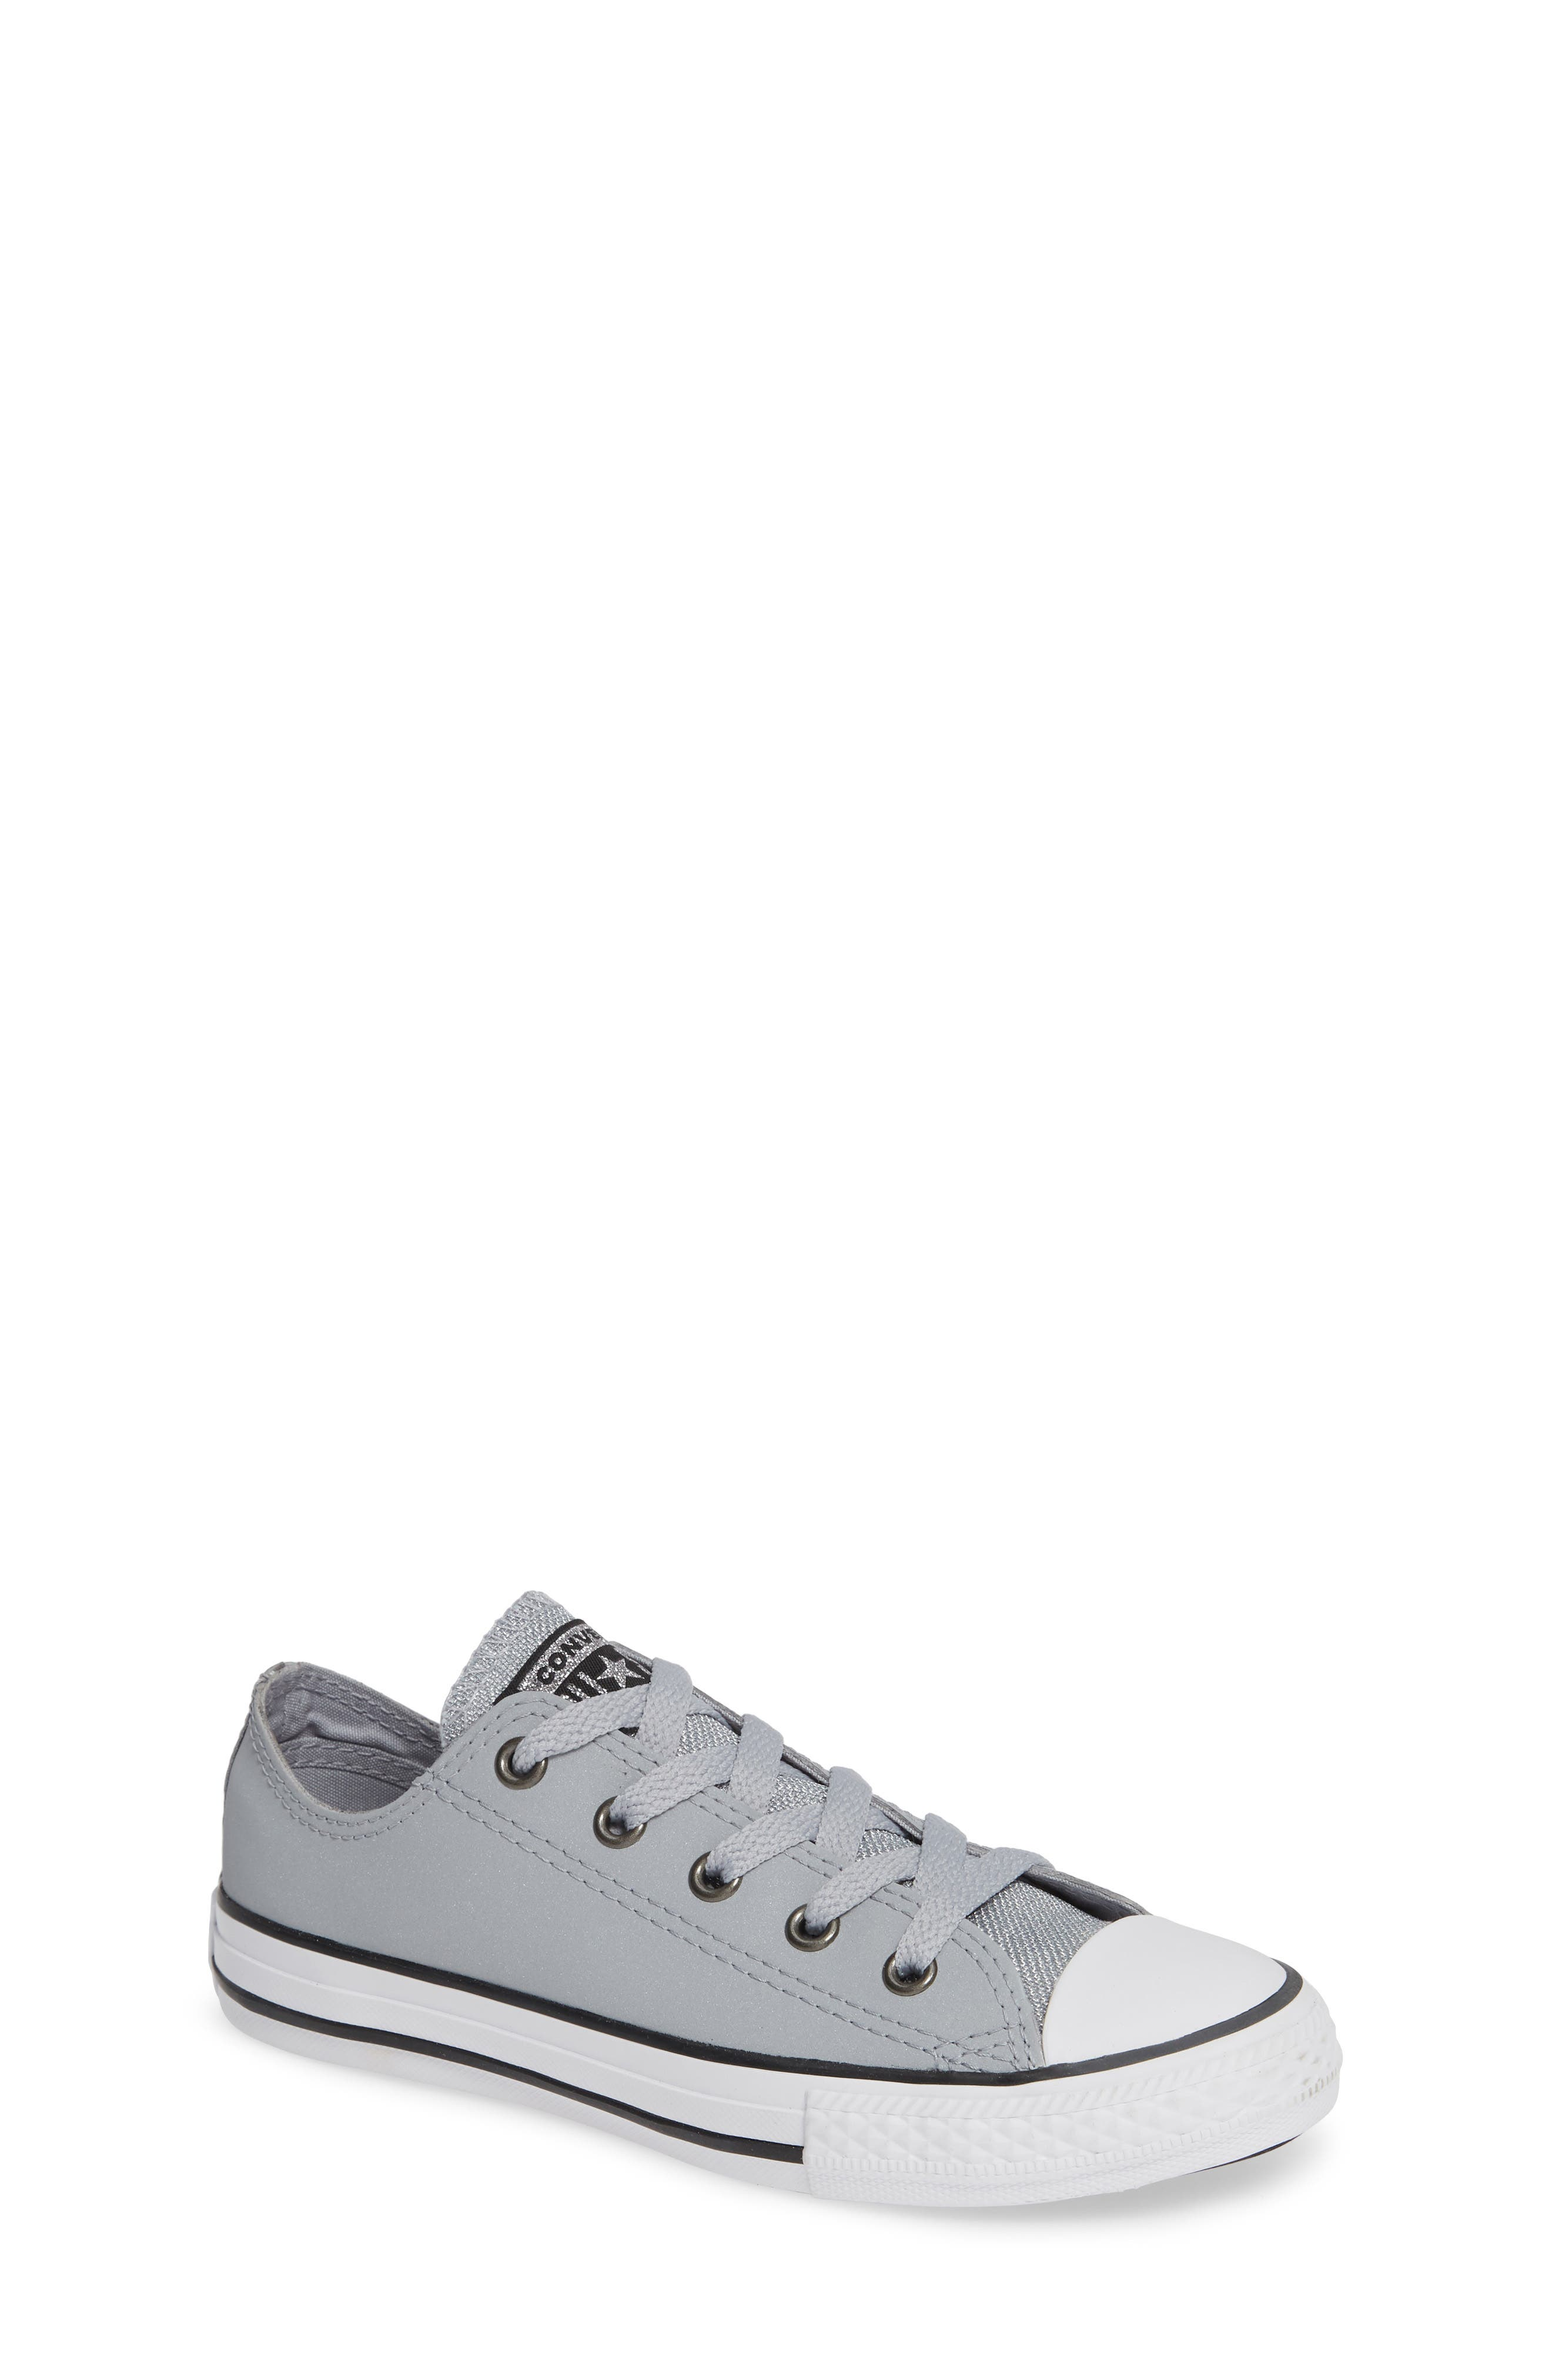 All Star<sup>®</sup> Metallic Low Top Sneaker, Main, color, WOLF GREY